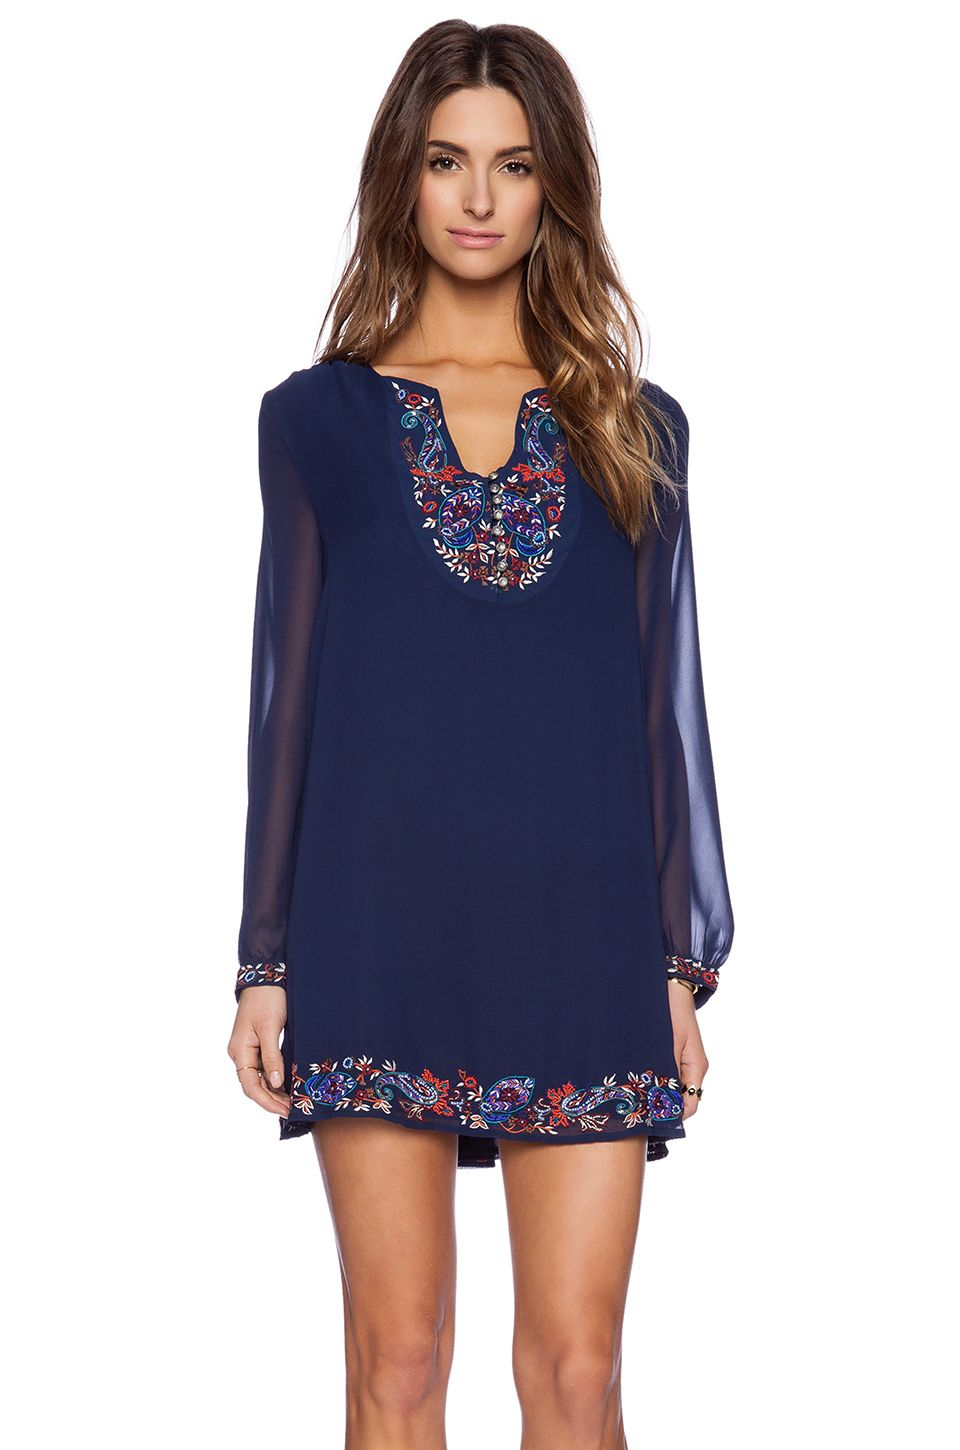 New Friends Colony Embellished Long Sleeve Dress in Navy | REVOLVE